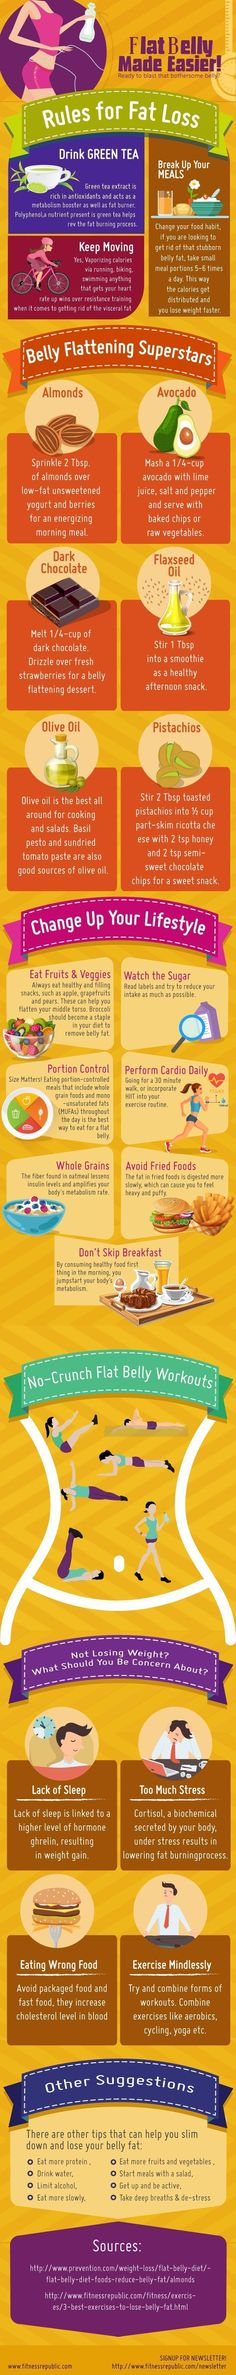 awesome Infographic: How To Attain A Flat Belly... - https://www.10waystogetridof.com/awesome-infographic-how-to-attain-a-flat-belly/